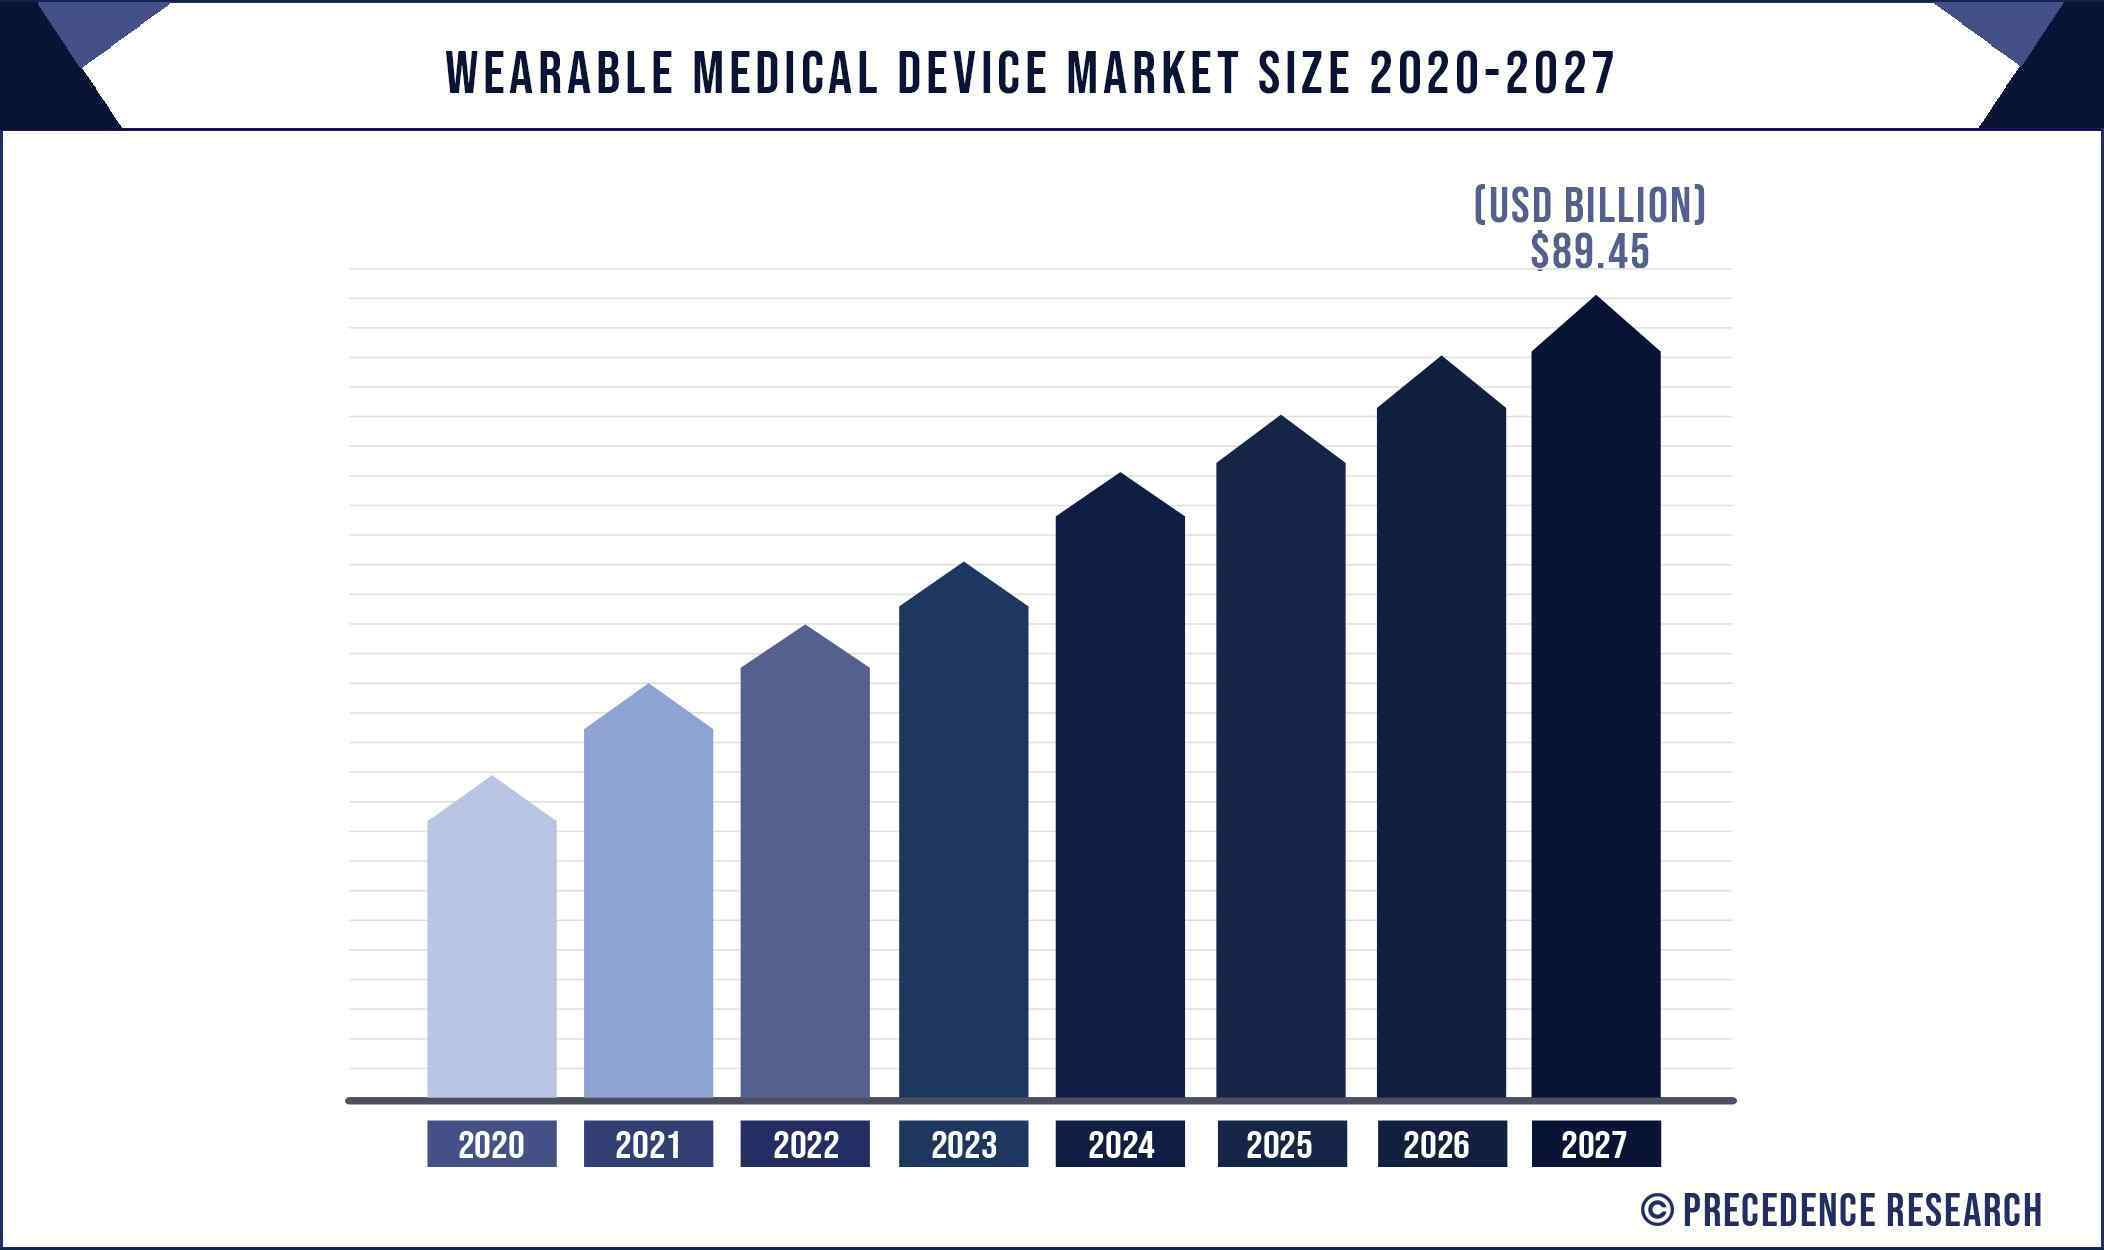 Wearable Medical Device Market Size 2020 to 2027